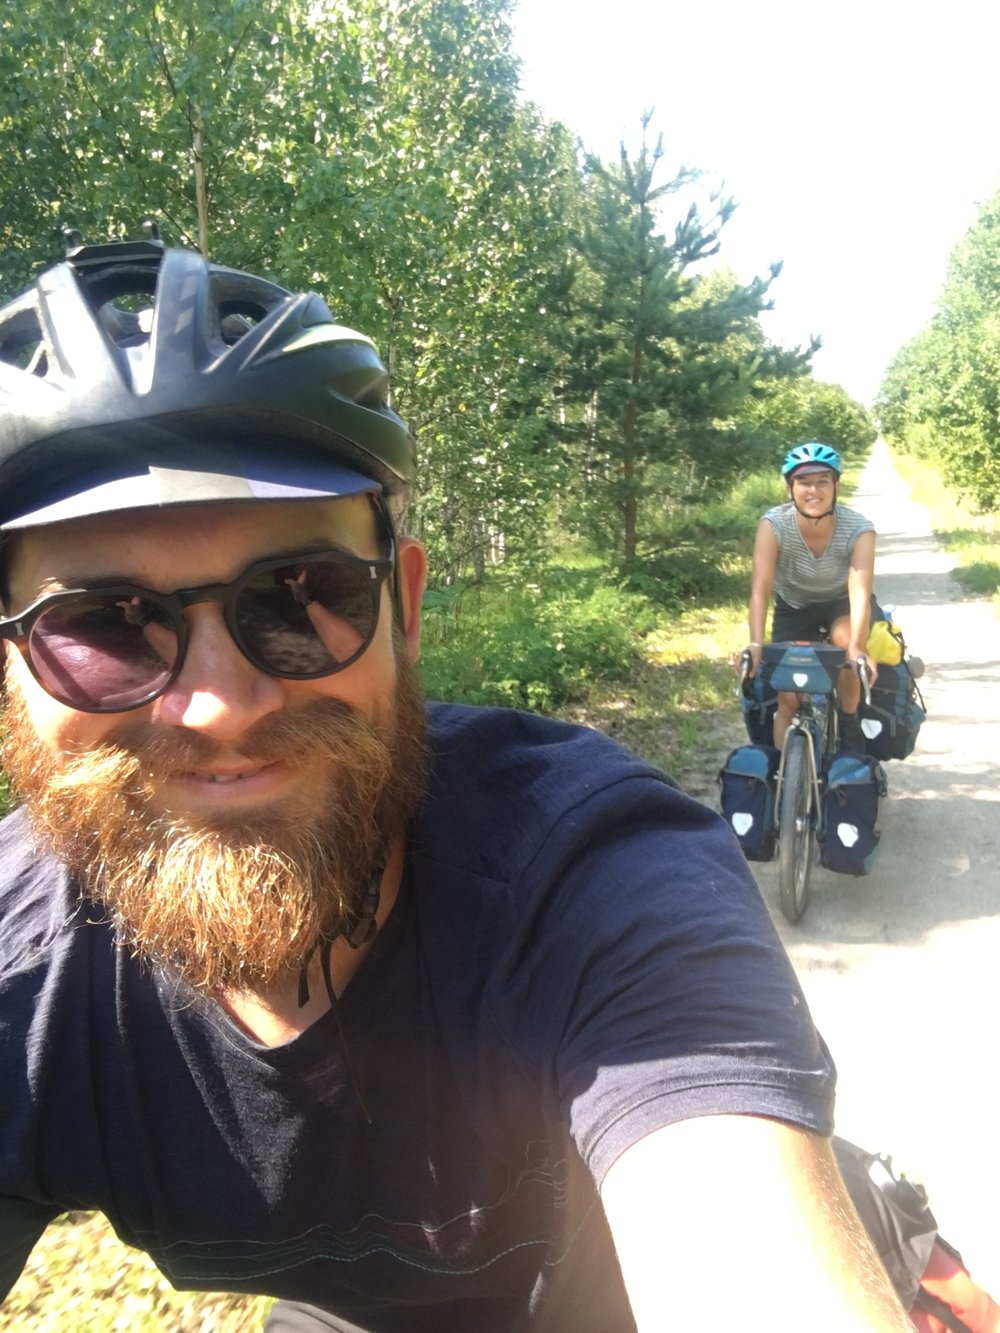 Cycling along without a care in the world. Before we found out we were on Saaremaa's Most-Wanted list.